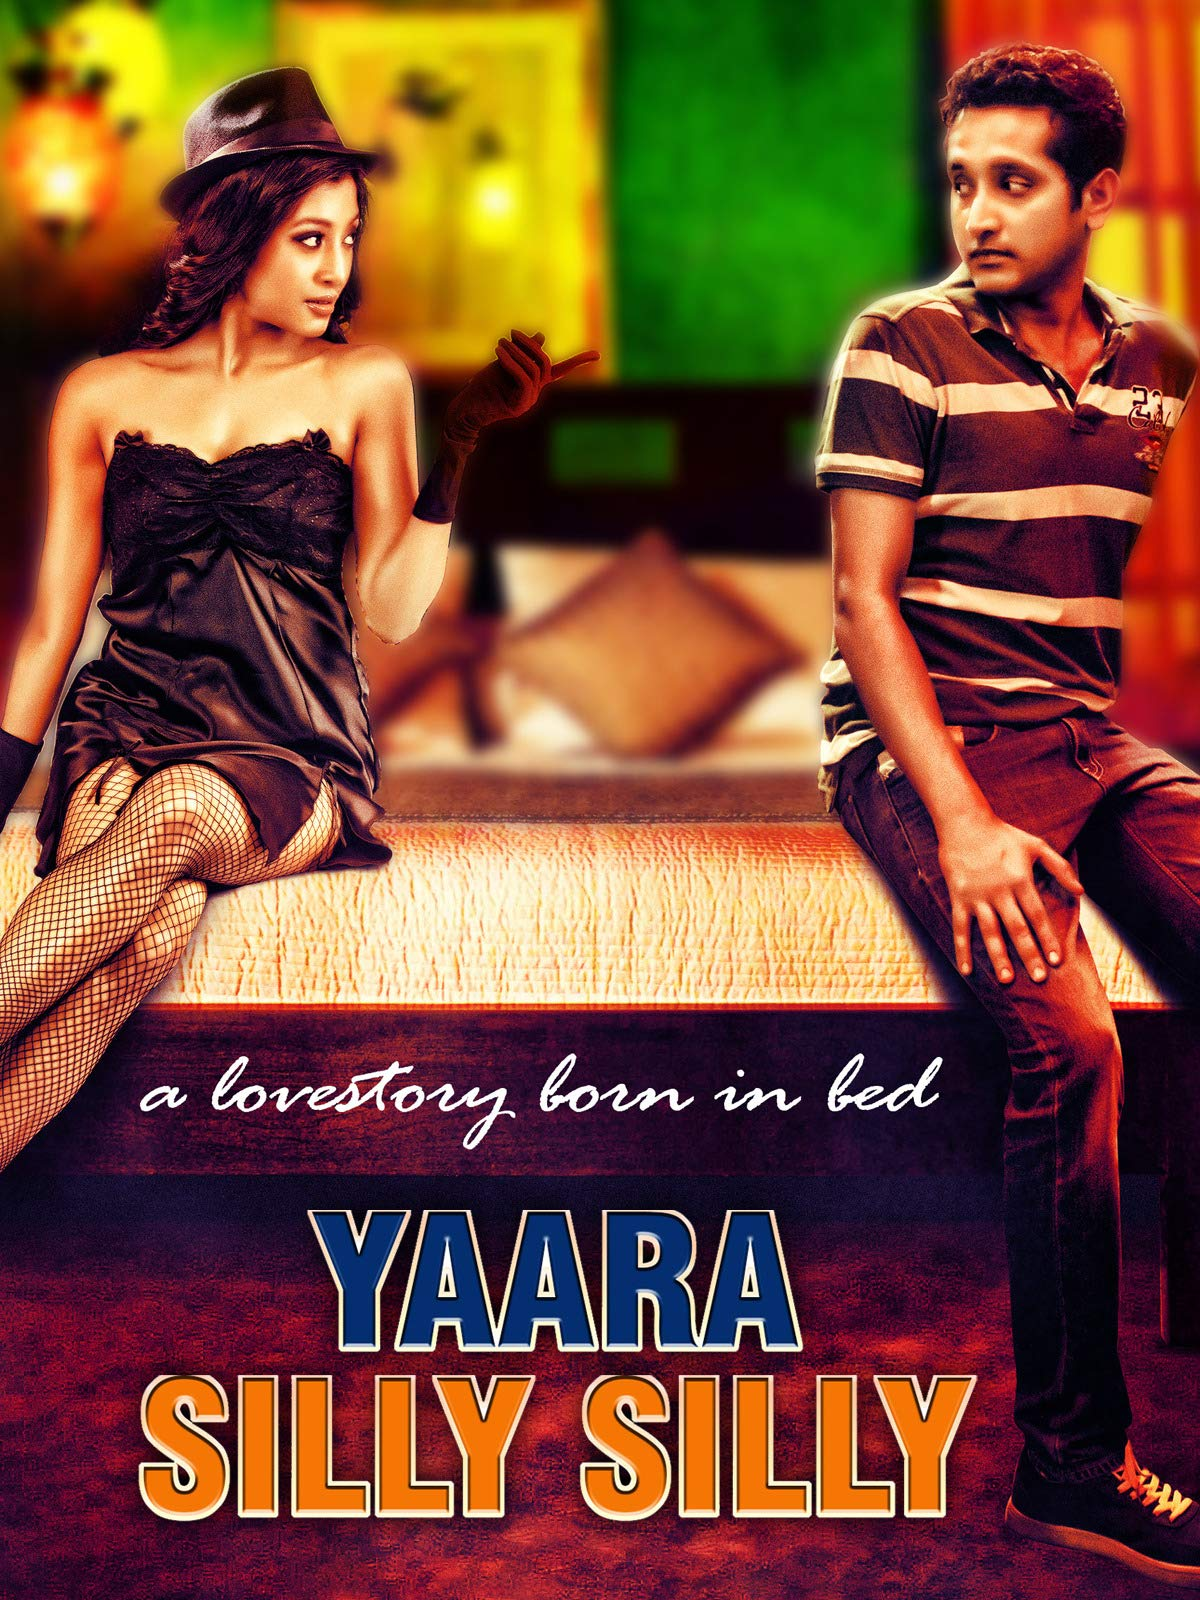 Yaara Silly Silly on Amazon Prime Video UK